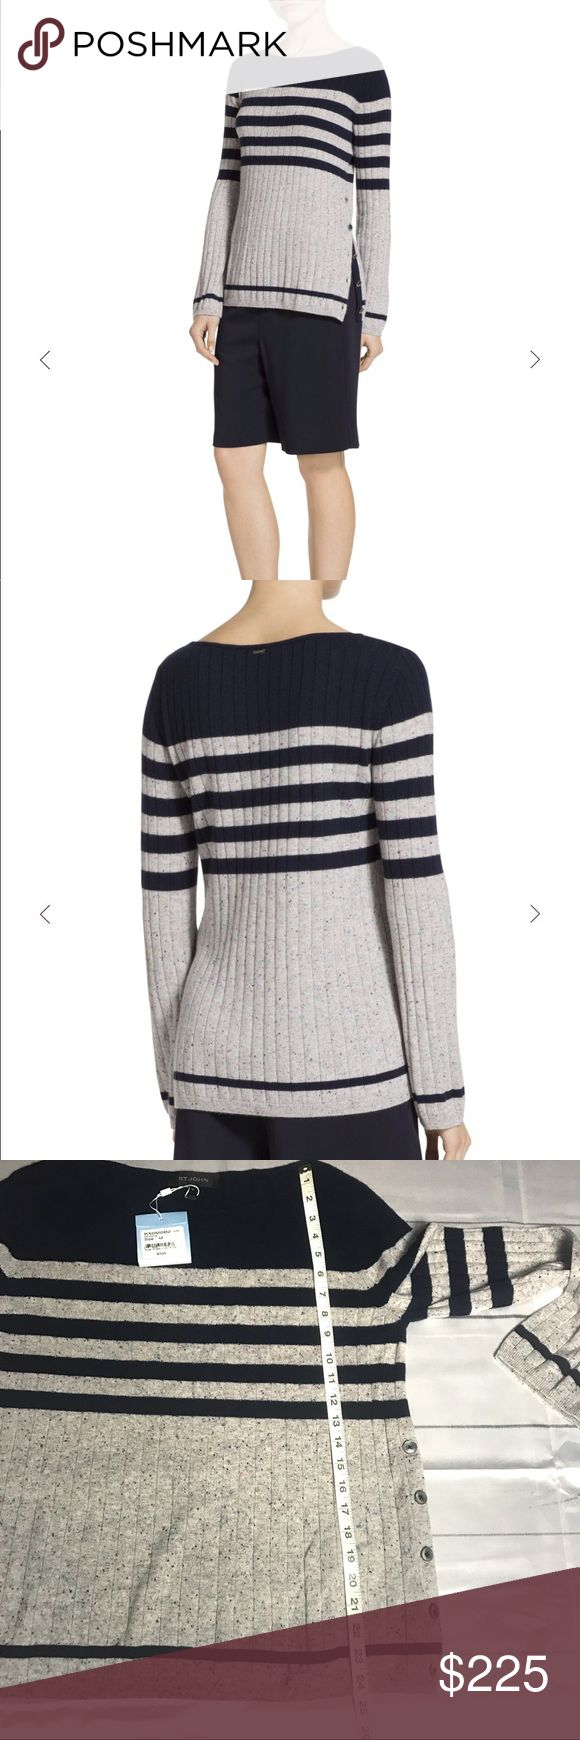 ST. JOHN  stripe Cashmere Sweater New with tag! ST.JOHN Cashmere Sweater  Informed by an elegant tonal stripe pattern, this St. John cashmere sweater is a versatile new-season essential. Comfort has never looked so chic.  Color: Navy Mica  A stylish yet comfortable piece that goes beyond basic 100% Cashmere Care: Professionally Clean Closure type: Button Bateau Neckline Long Sleeve Imported  #1203 St. John Sweaters Crew & Scoop Necks